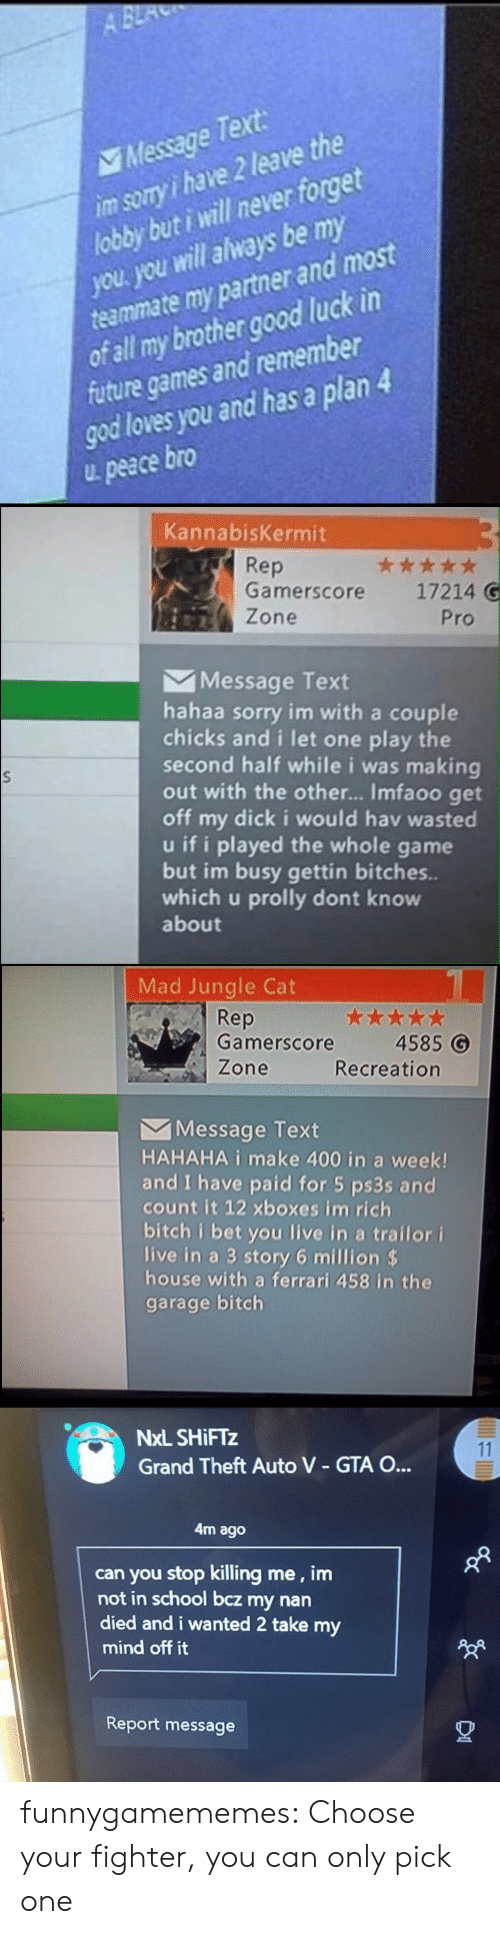 wanted 2: A BE  Message Text  im sory i have 2 leave the  lobby but i will never forget  you. you will always be my  teammate my partner and most  of all my brother good luck in  future games and remember  god loves you and has a plan 4  peace bro   KannabisKermit  Rep  Gamerscore  ***  17214 G  Zone  Pro  Message Text  hahaa sorry im with a couple  chicks and i let one play the  second half while i was making  out with the othe... Imfaoo get  off my dick i would hav wasted  u if i played the whole game  but im busy gettin bitches..  which u prolly dont know  about   Mad Jungle Cat  Rep  Gamerscore  4585 G  Zone  Recreation  Message Text  HAHAHA i make 400 in a week!  and I have paid for 5 ps3s and  count it 12 xboxes im rich  bitch i bet you live in a trailor i  live in a 3 story 6 million $  house with a ferrari 458 in the  garage bitch   NxL SHIFTZ  11  Grand Theft Auto V - GTA O...  4m ago  can you stop killing me, im  not in school bcz my nan  died and i wanted 2 take my  mind off it  Report message funnygamememes: Choose your fighter, you can only pick one